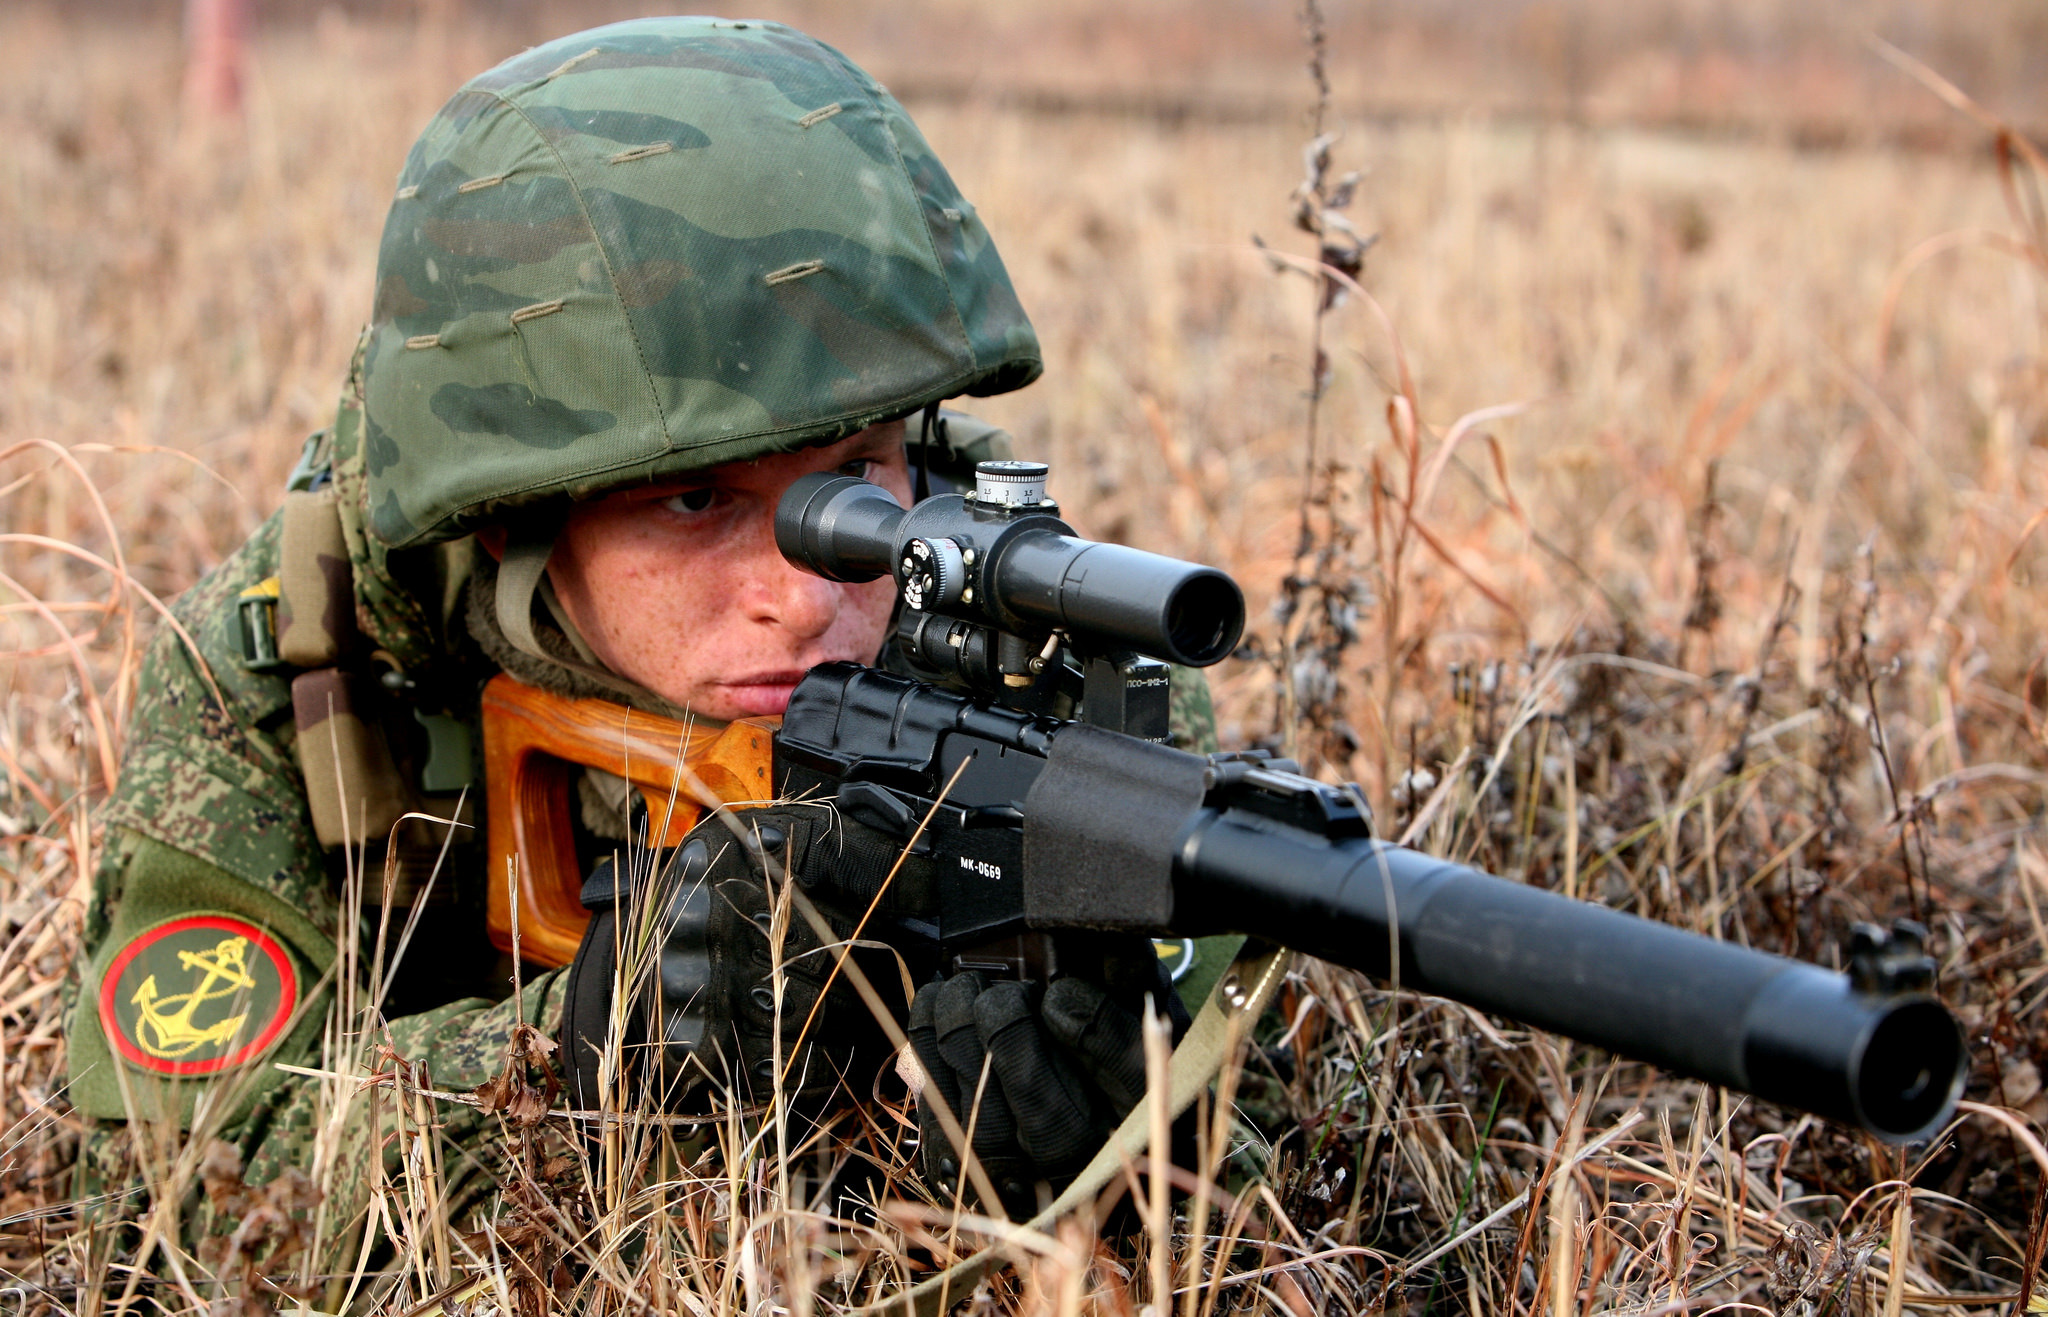 Wallpaper soldiers army sniper rifle jet addict wallpapers men 2048x1317